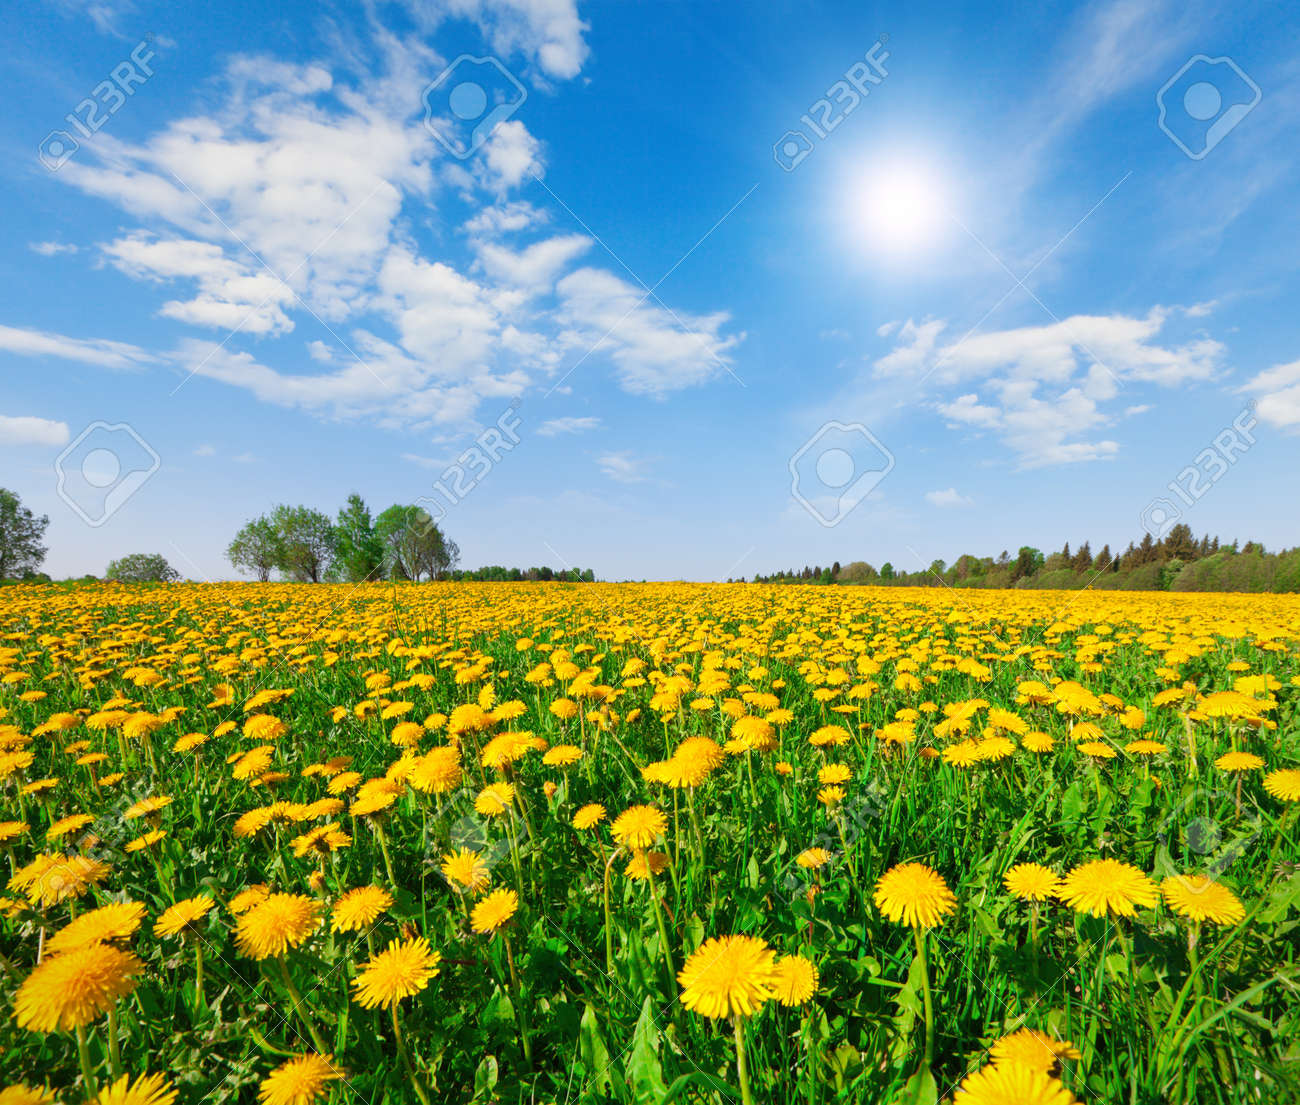 Yellow flowers hill under blue cloudy sky - 17675938